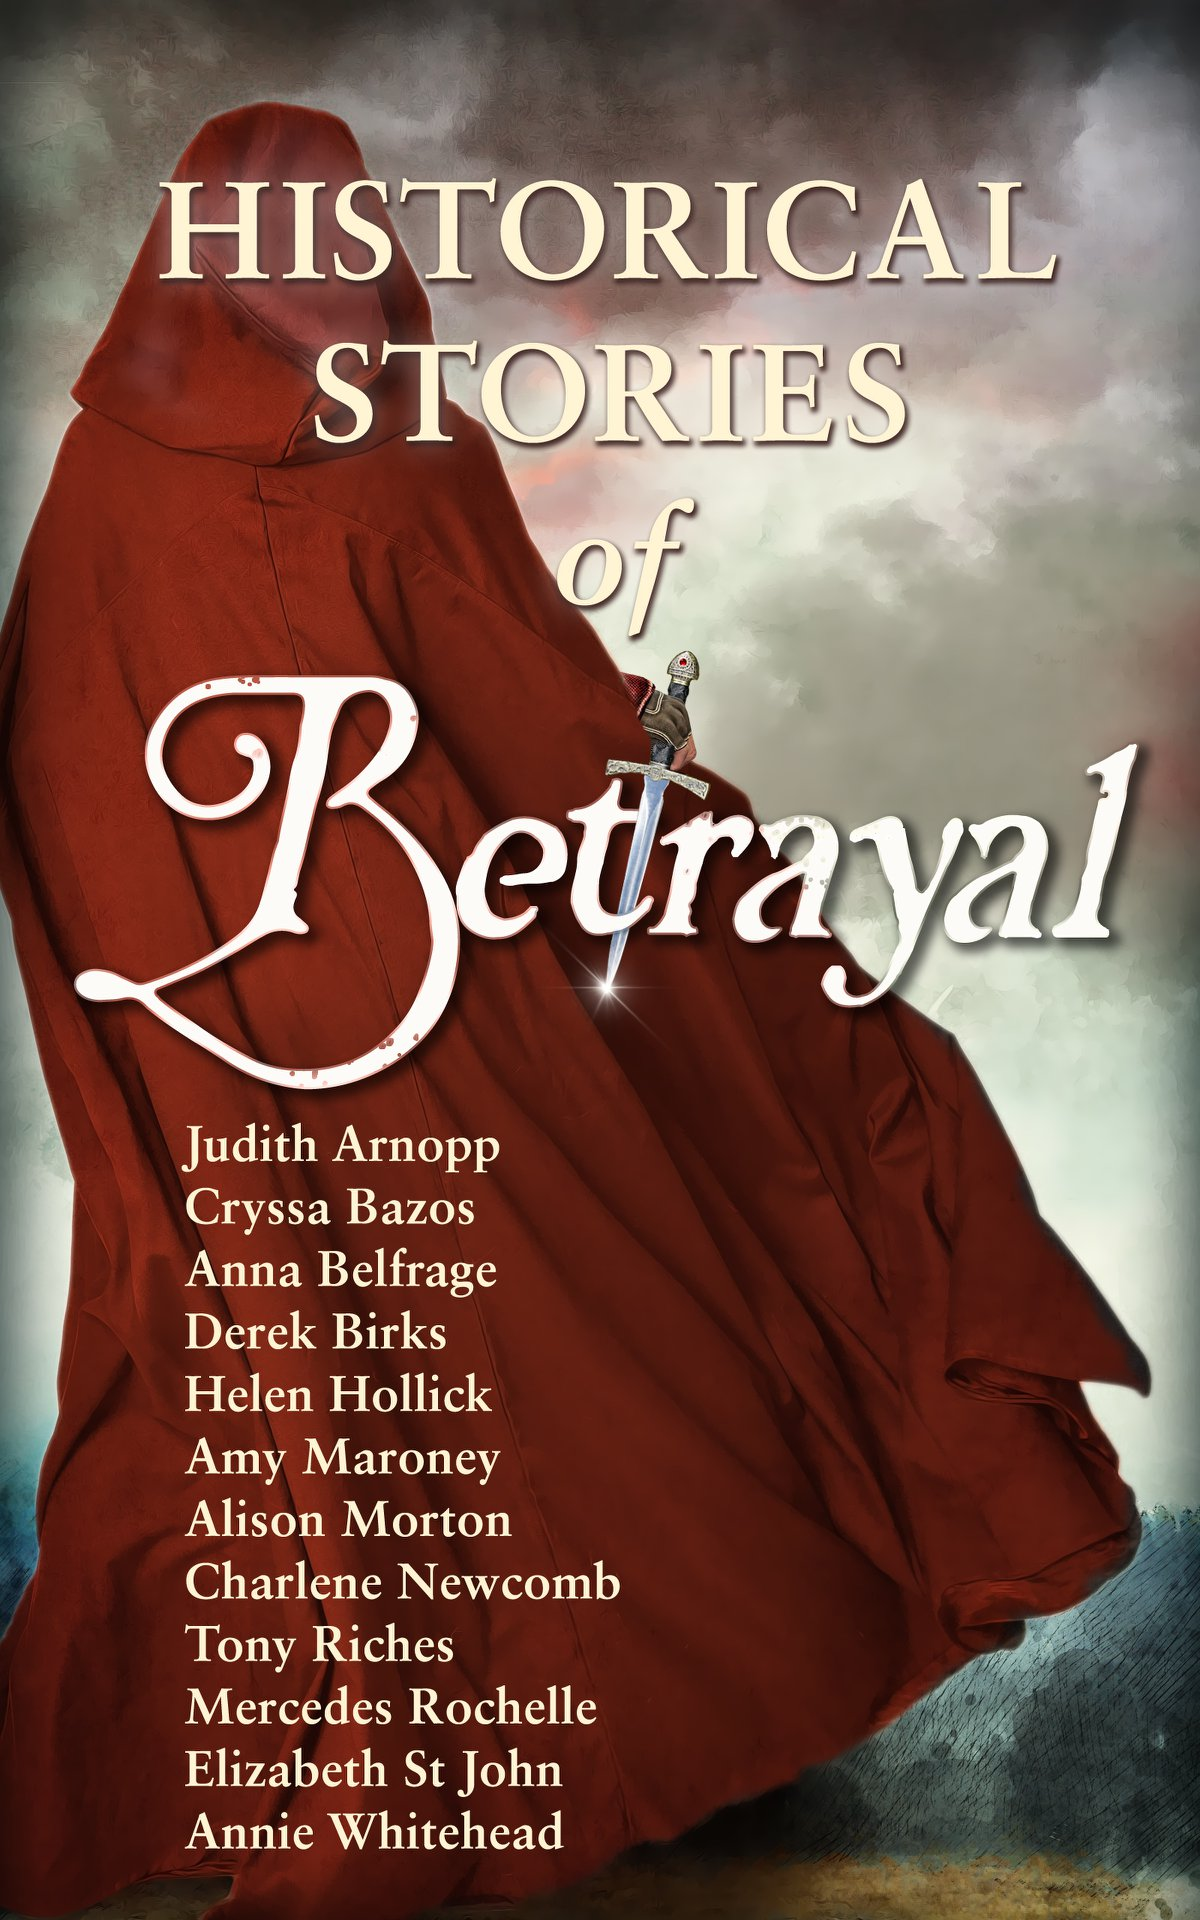 Historical Stories of Betrayal